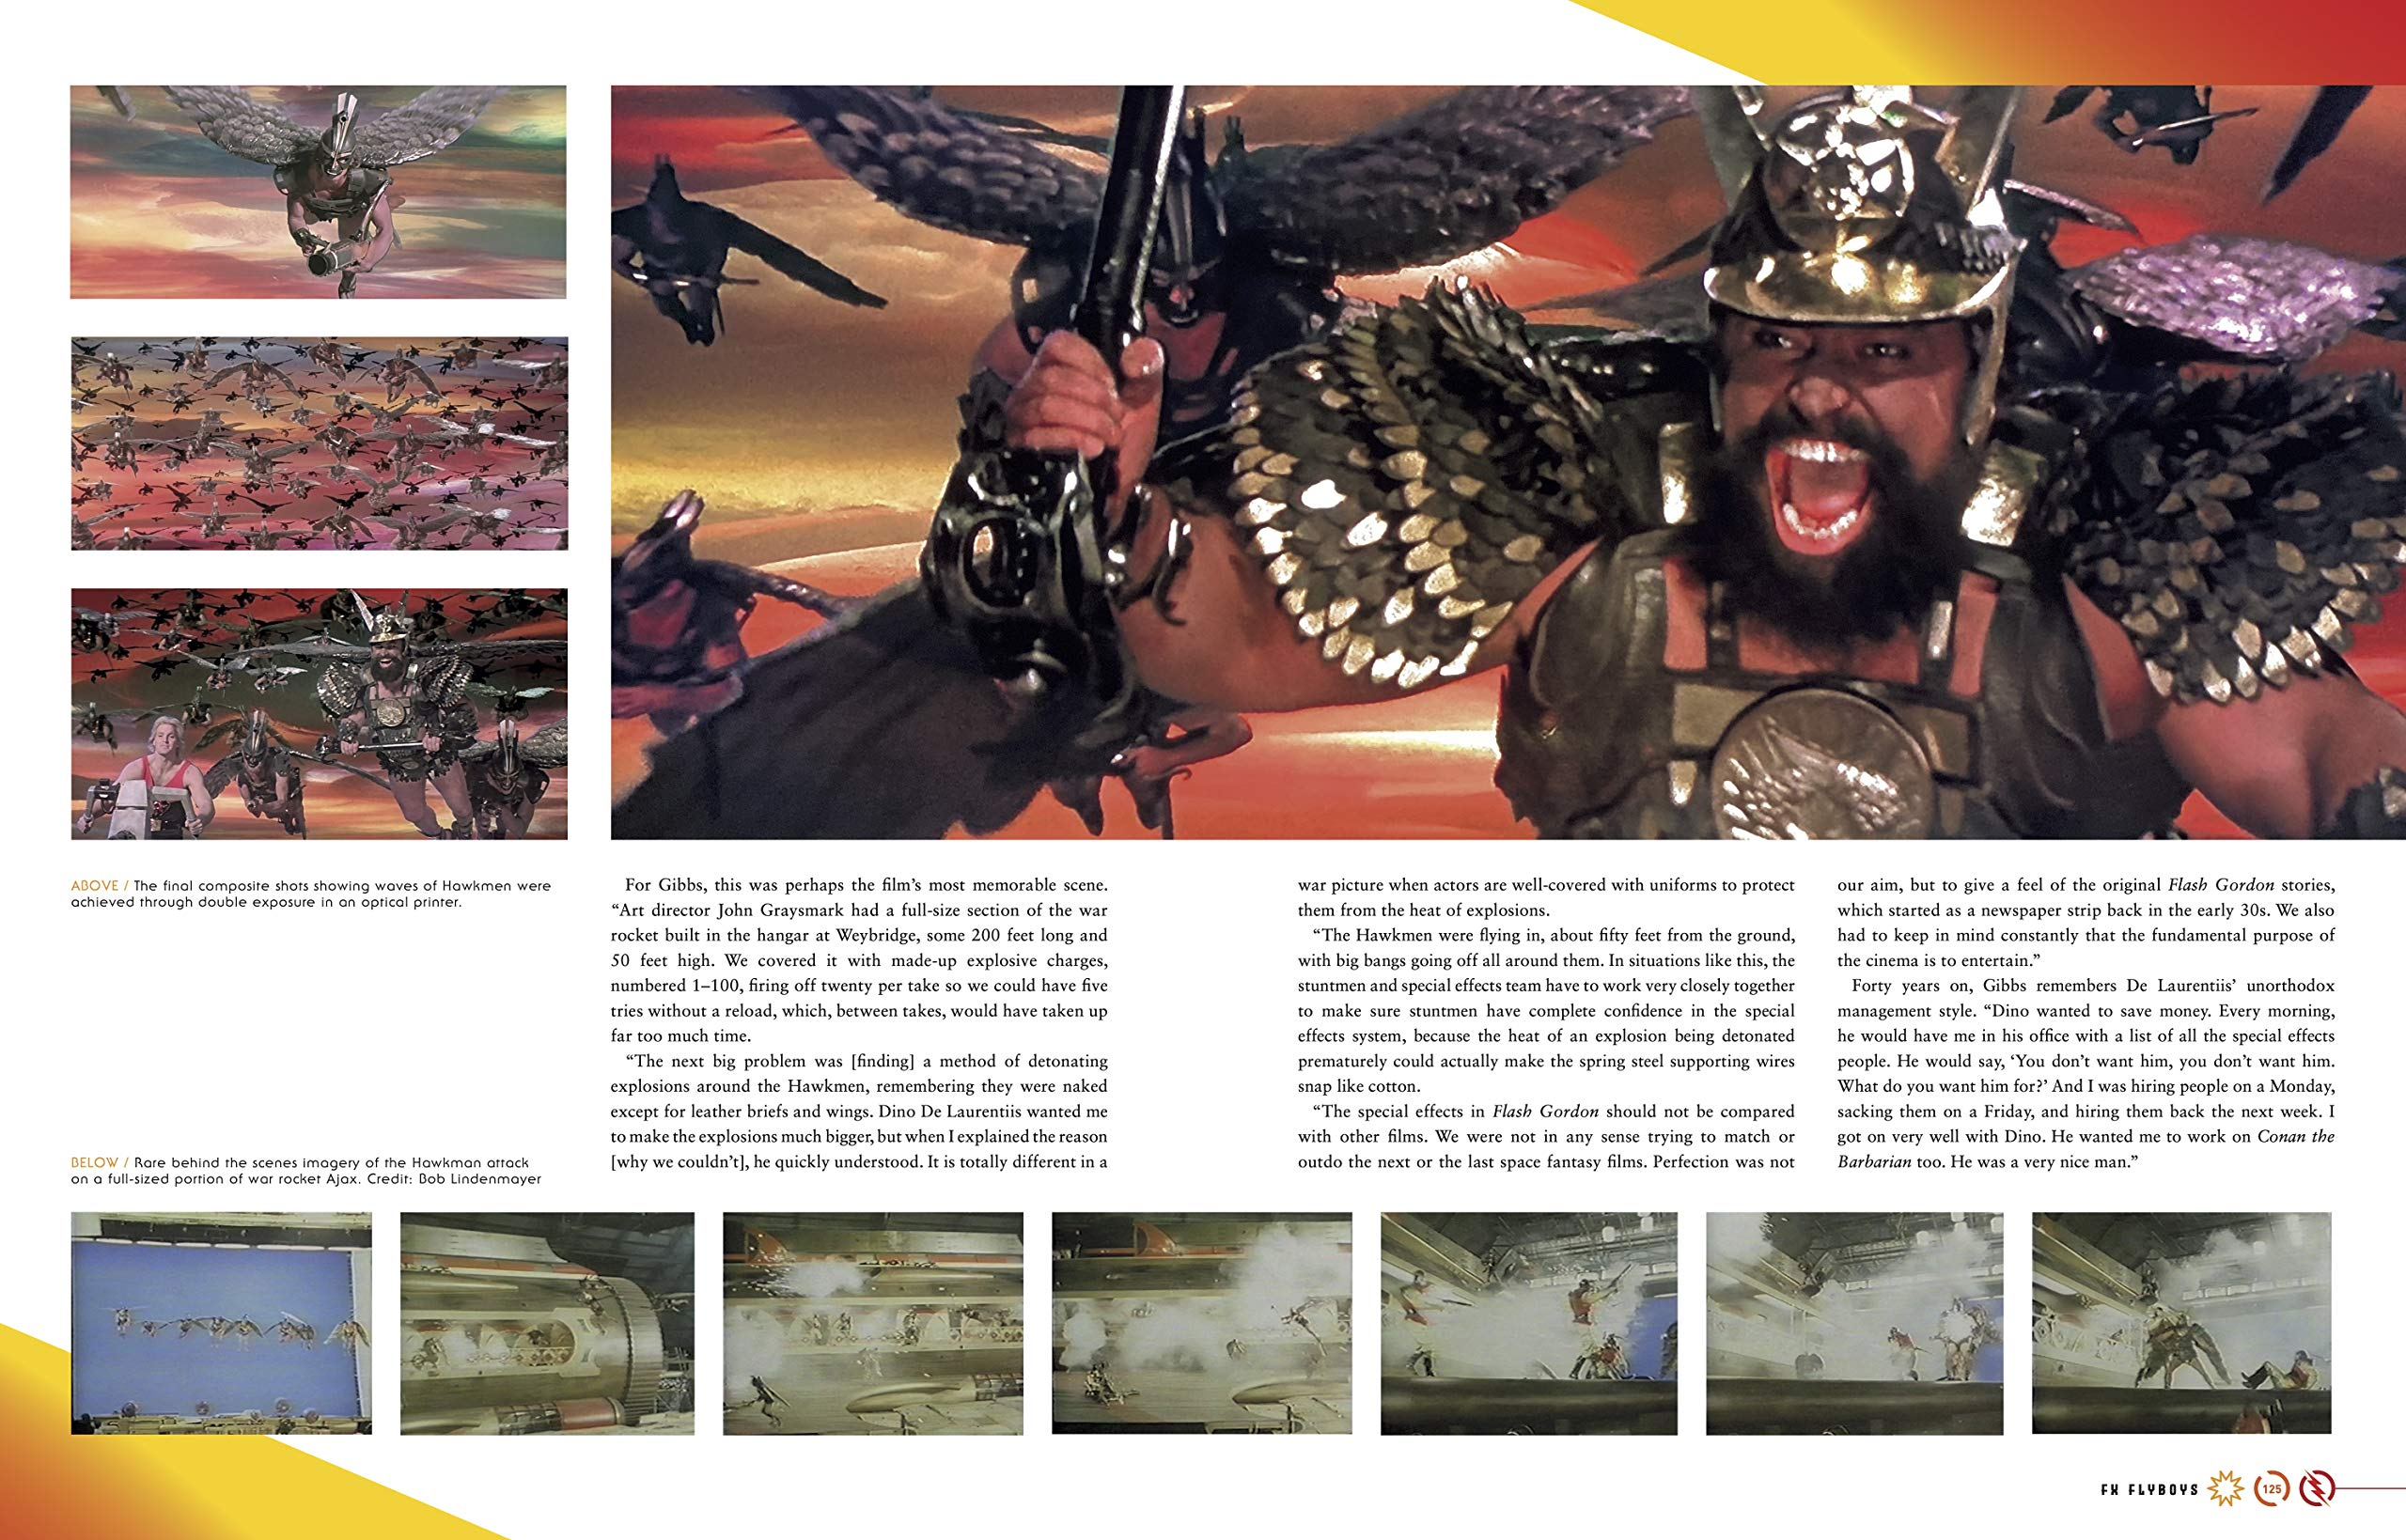 Flash Gordon: The Official Story of the Film Book